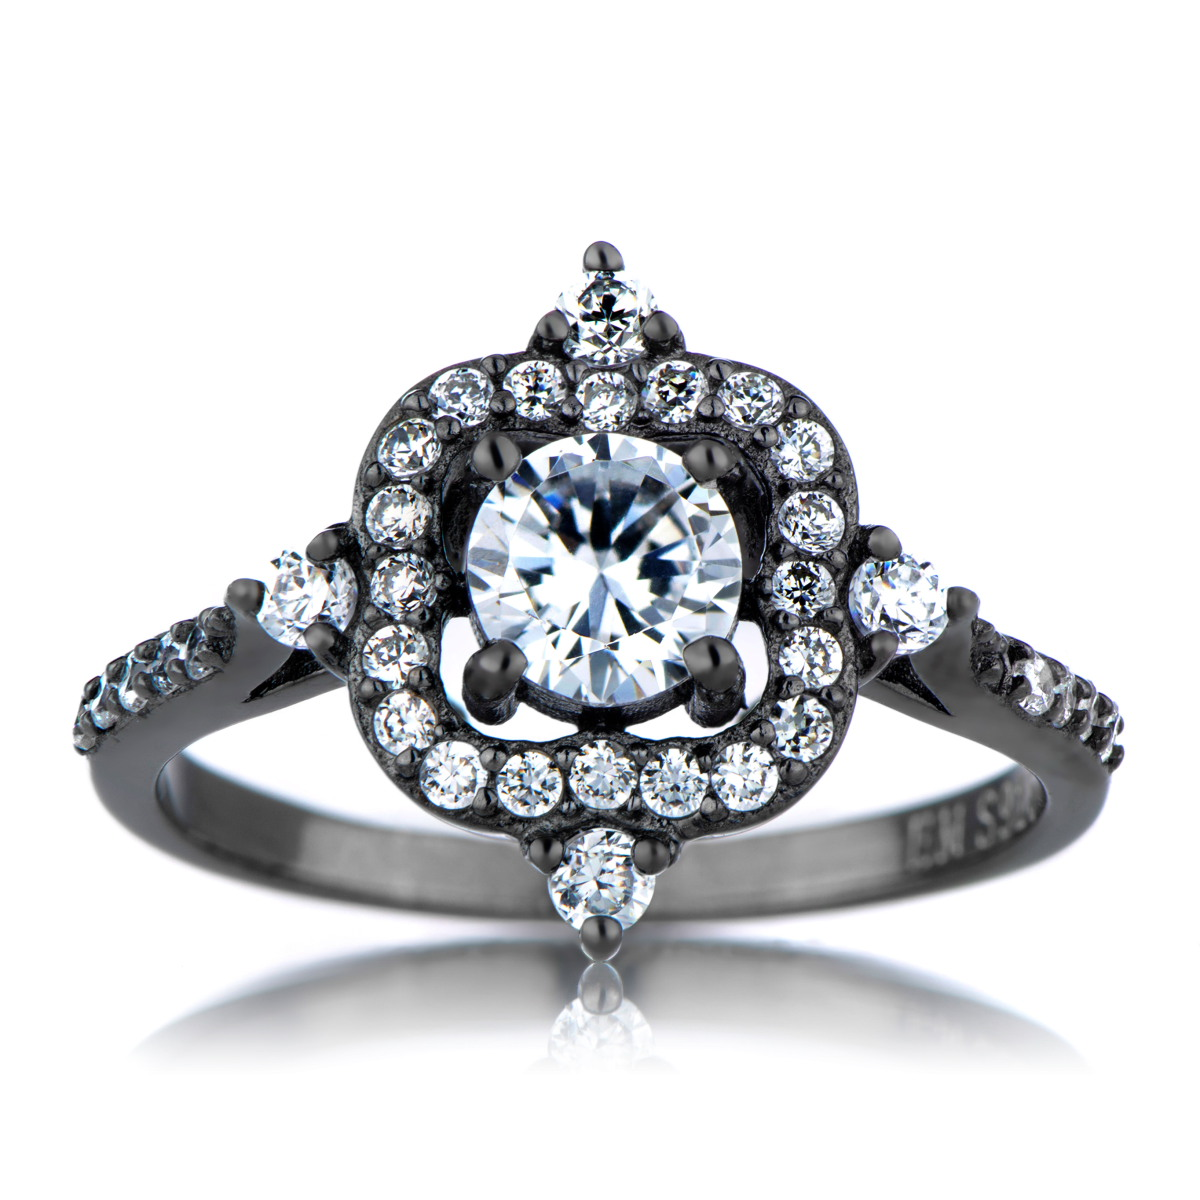 Vintage Looking Engagement Ring - Passion Porn